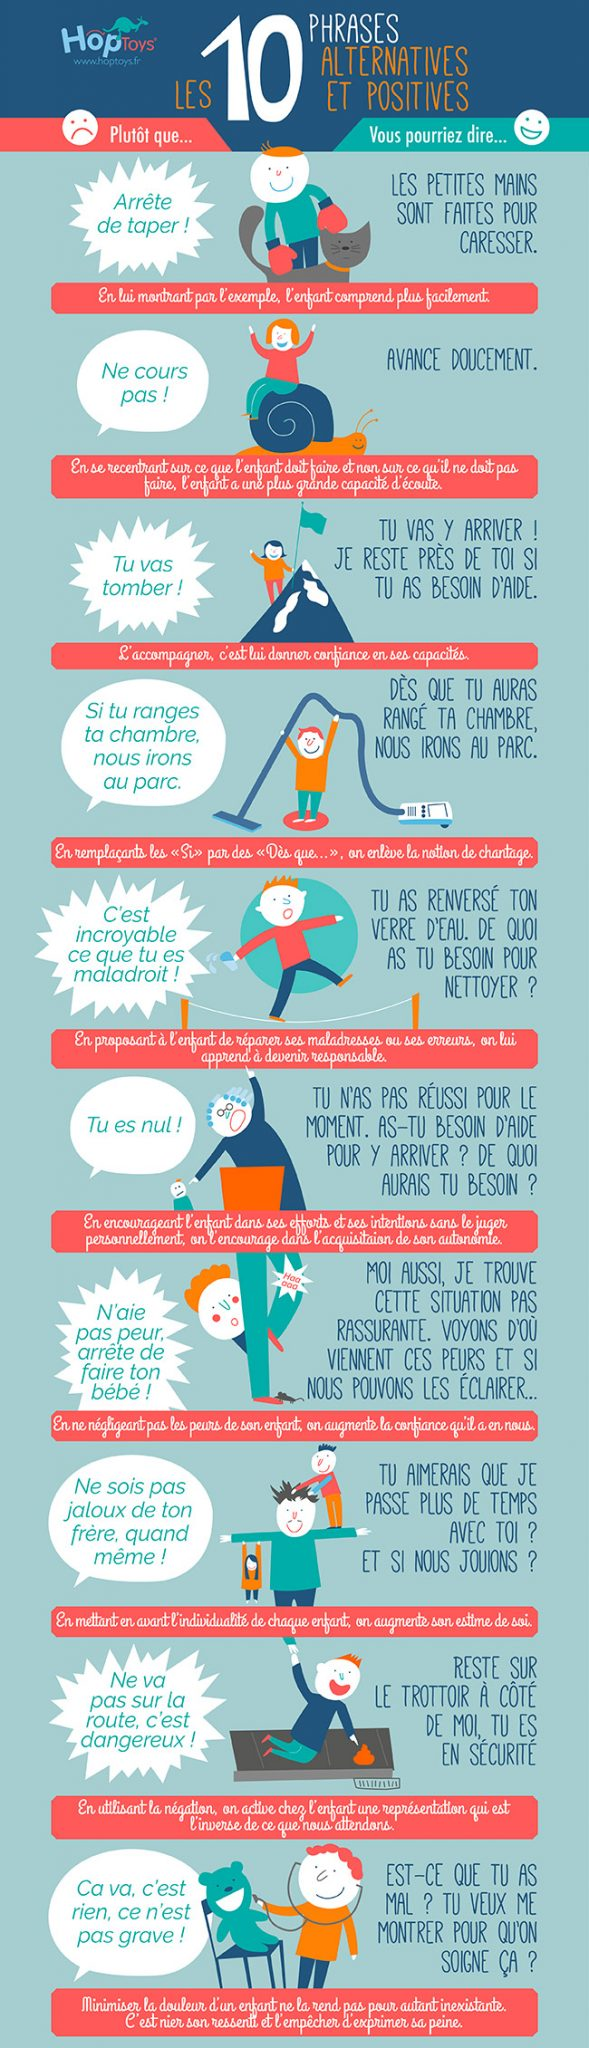 infographie 10 phrases alternatives positives